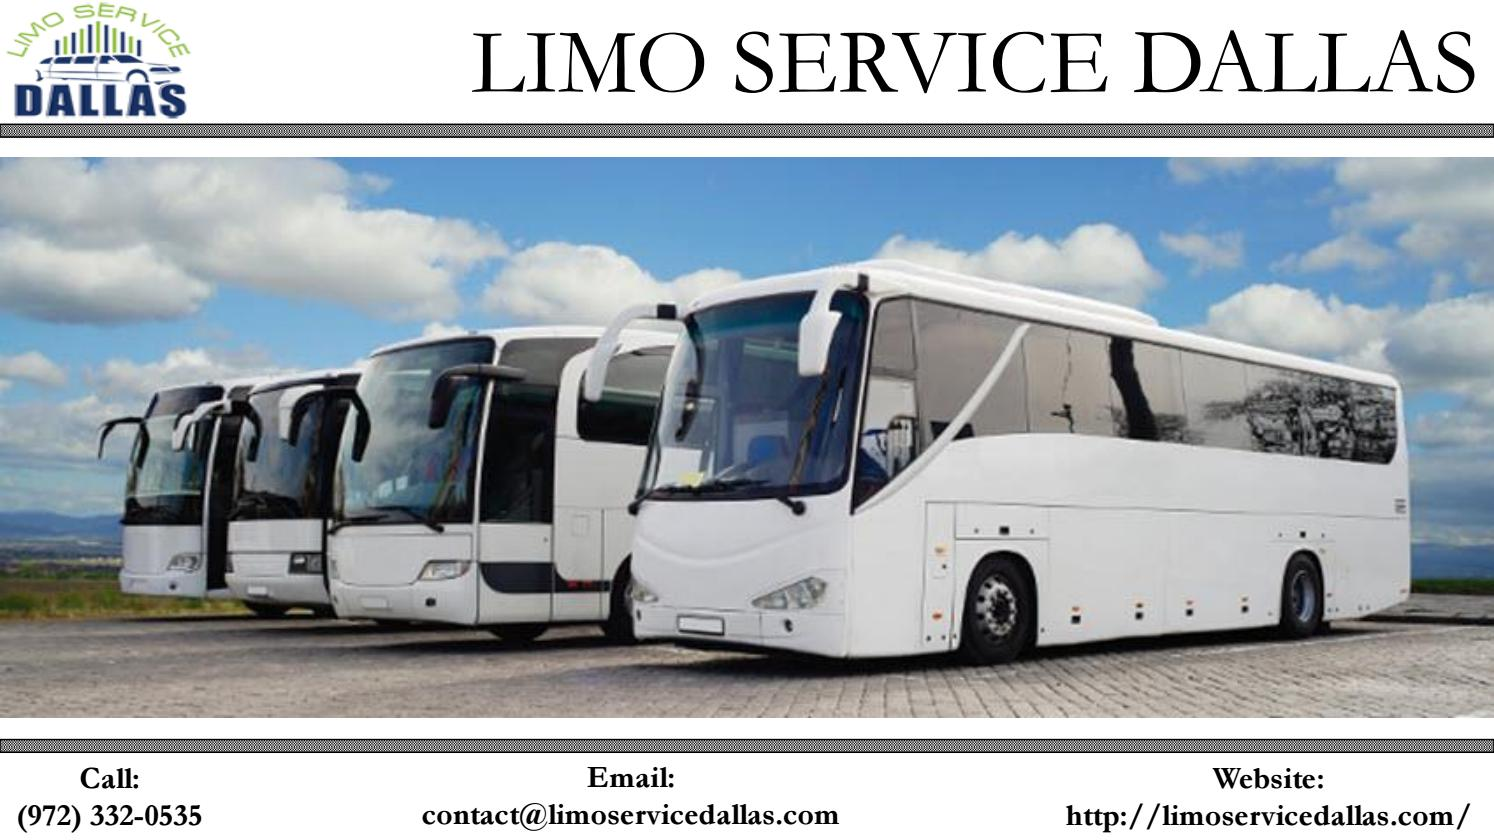 5 Reasons To Choose A Charter Bus Rental Dallas For Your Holiday Trip By Limoservicedallas66 Issuu